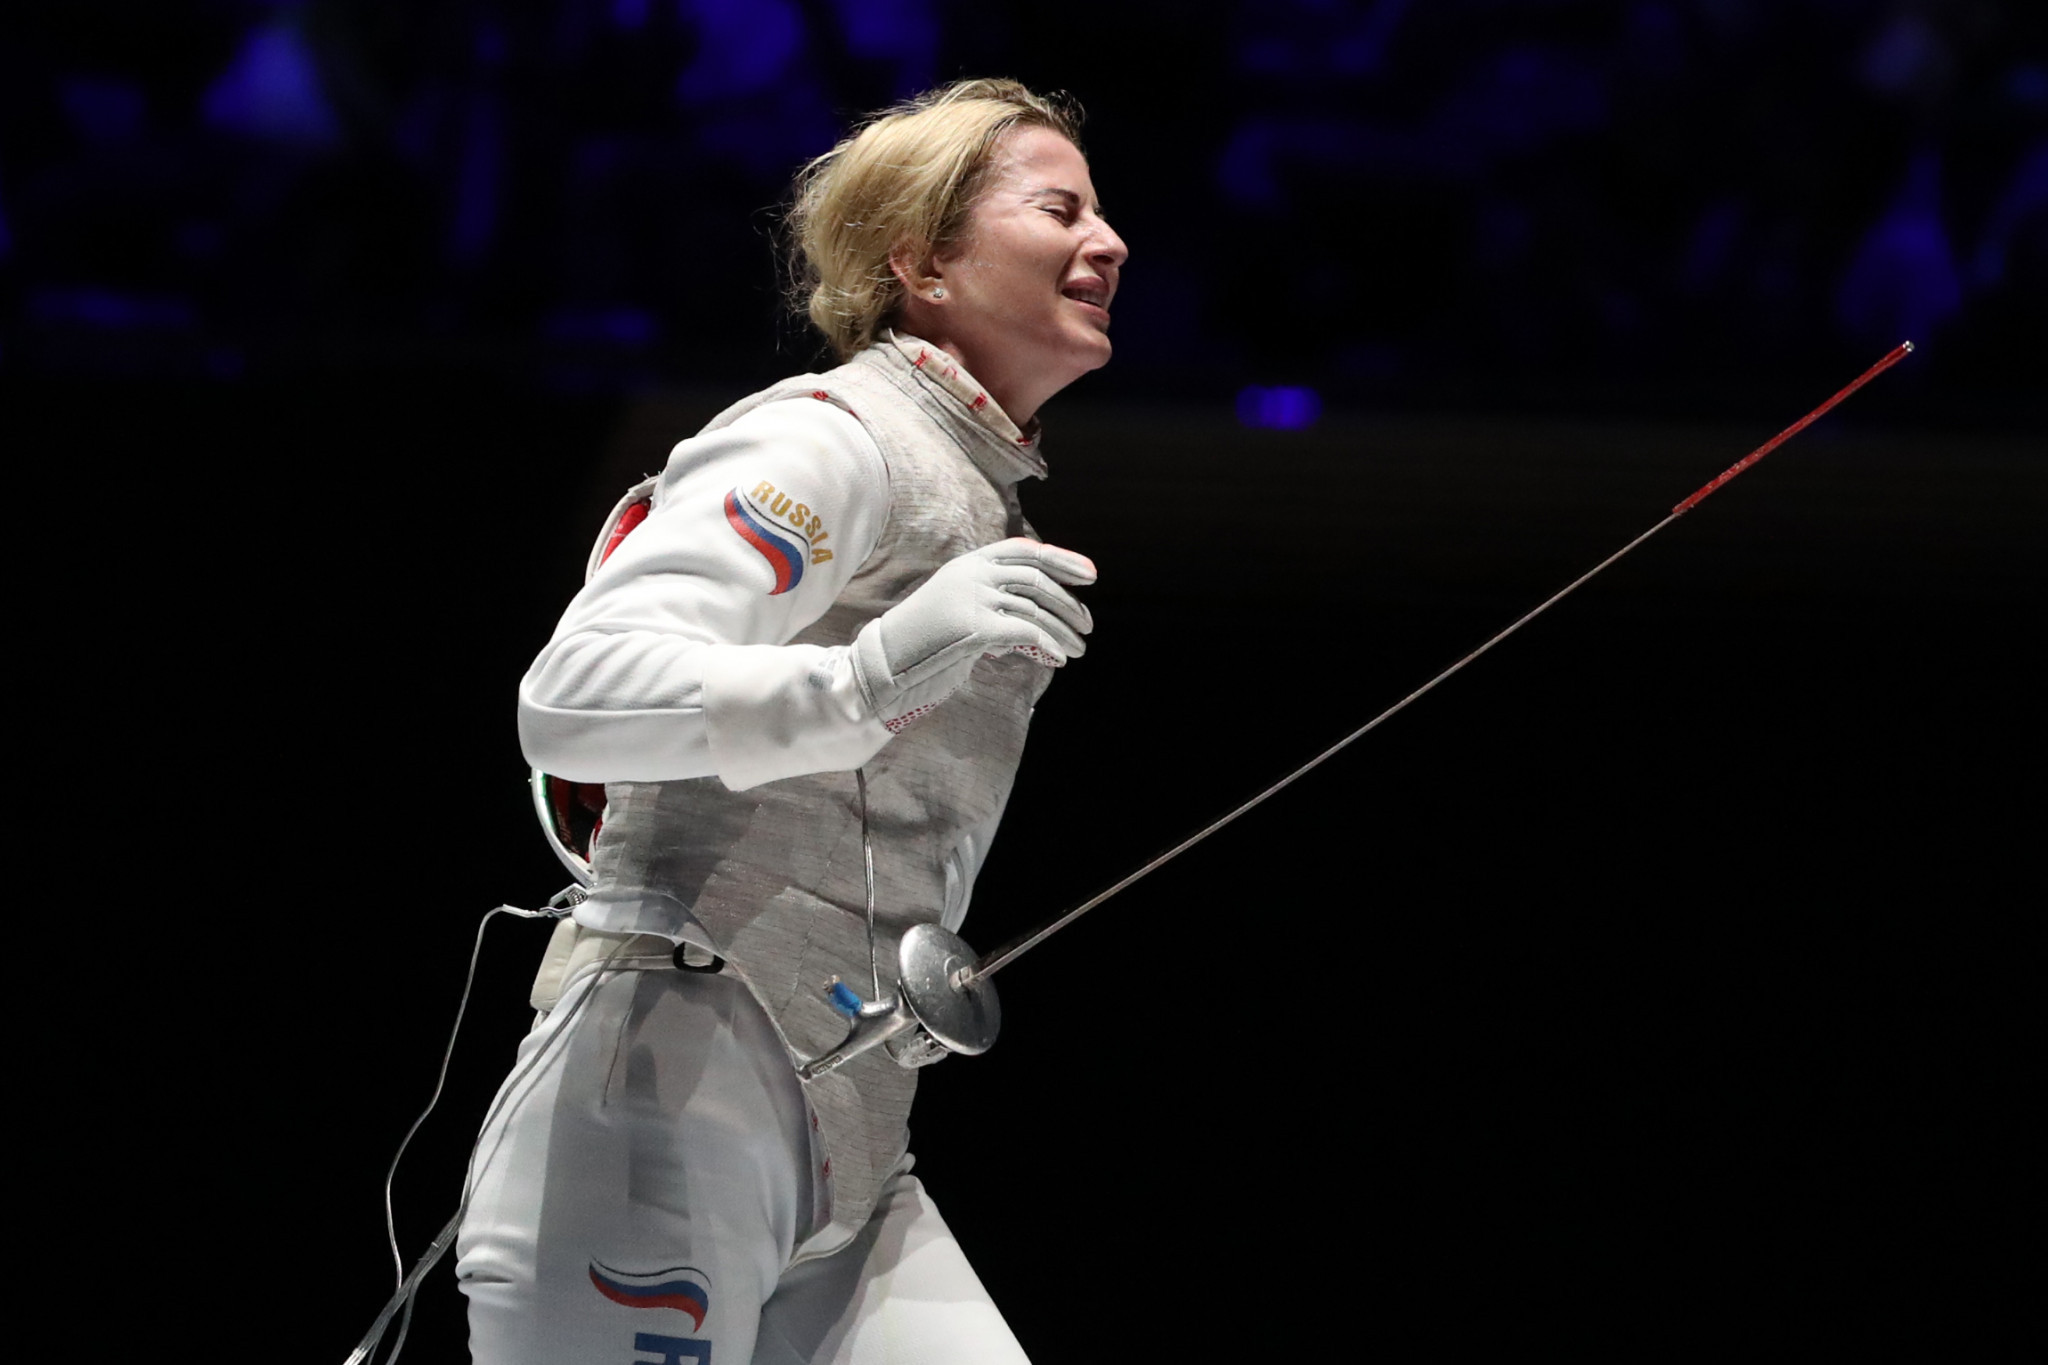 Olympic champion Deriglazova triumphs at FIE Women's Foil World Cup